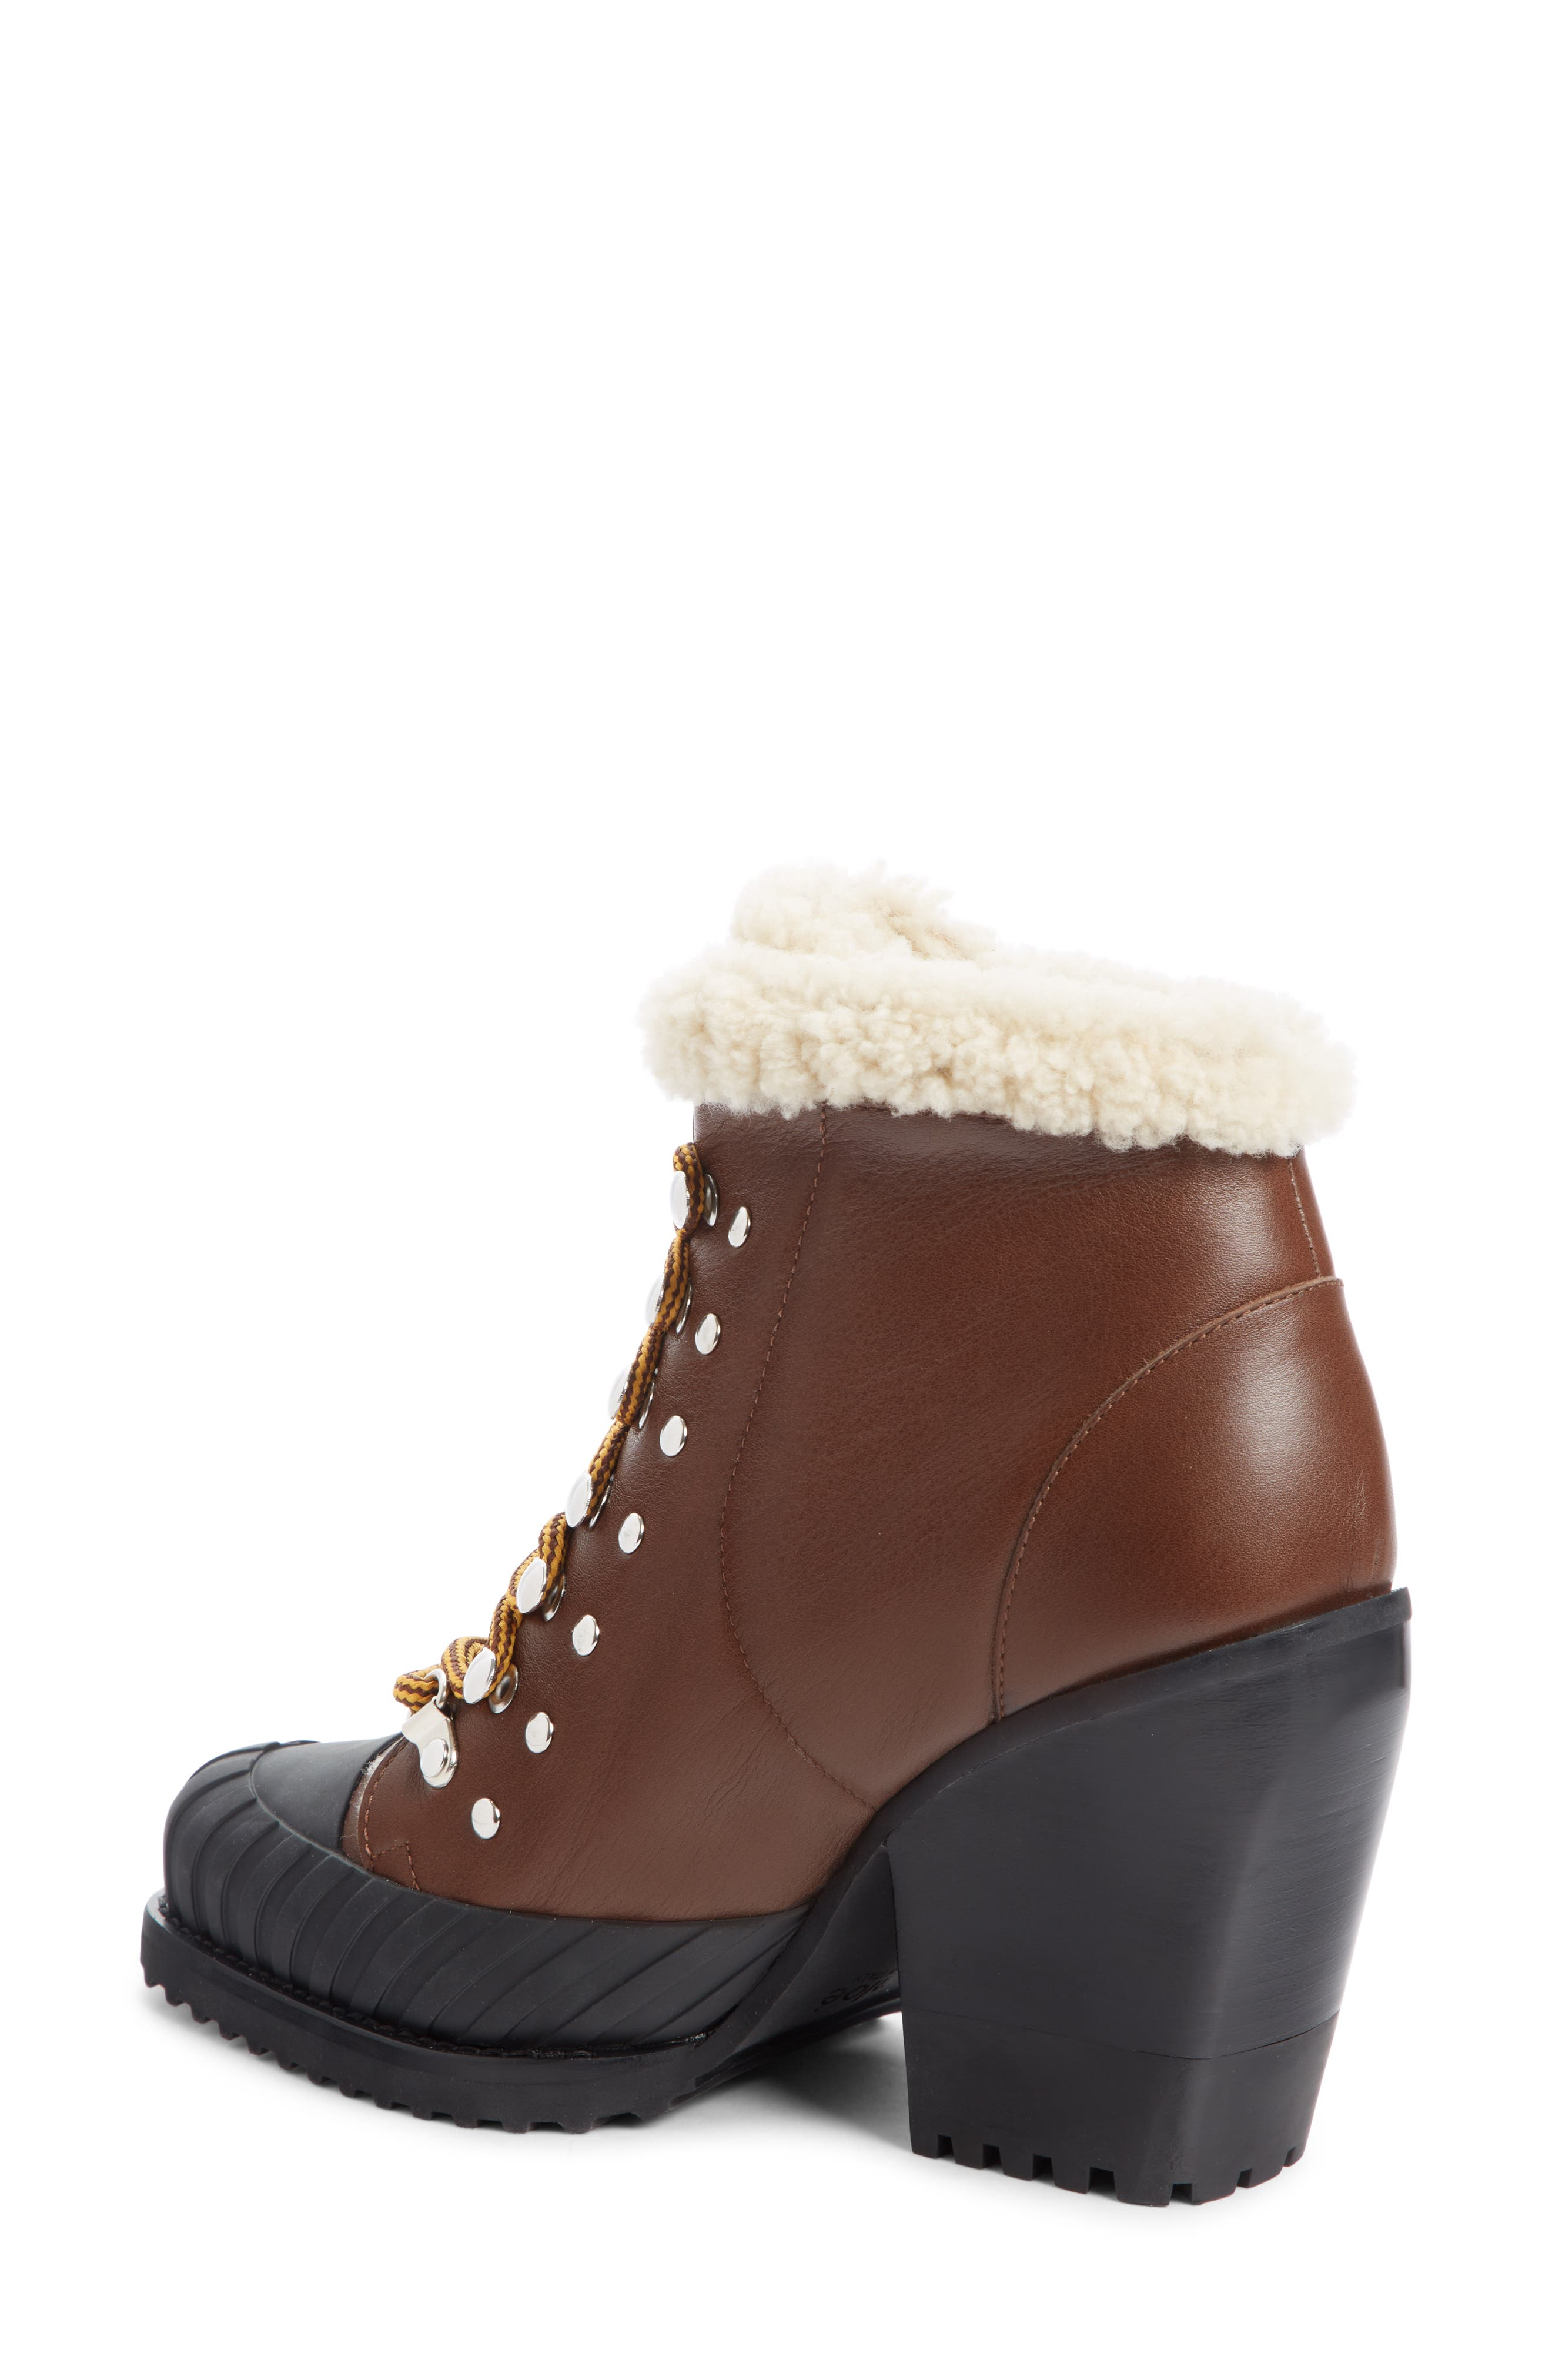 Rylee Genuine Shearling Lined Hiking Boot,                             Alternate thumbnail 2, color,                             TRUE BROWN LEATHER